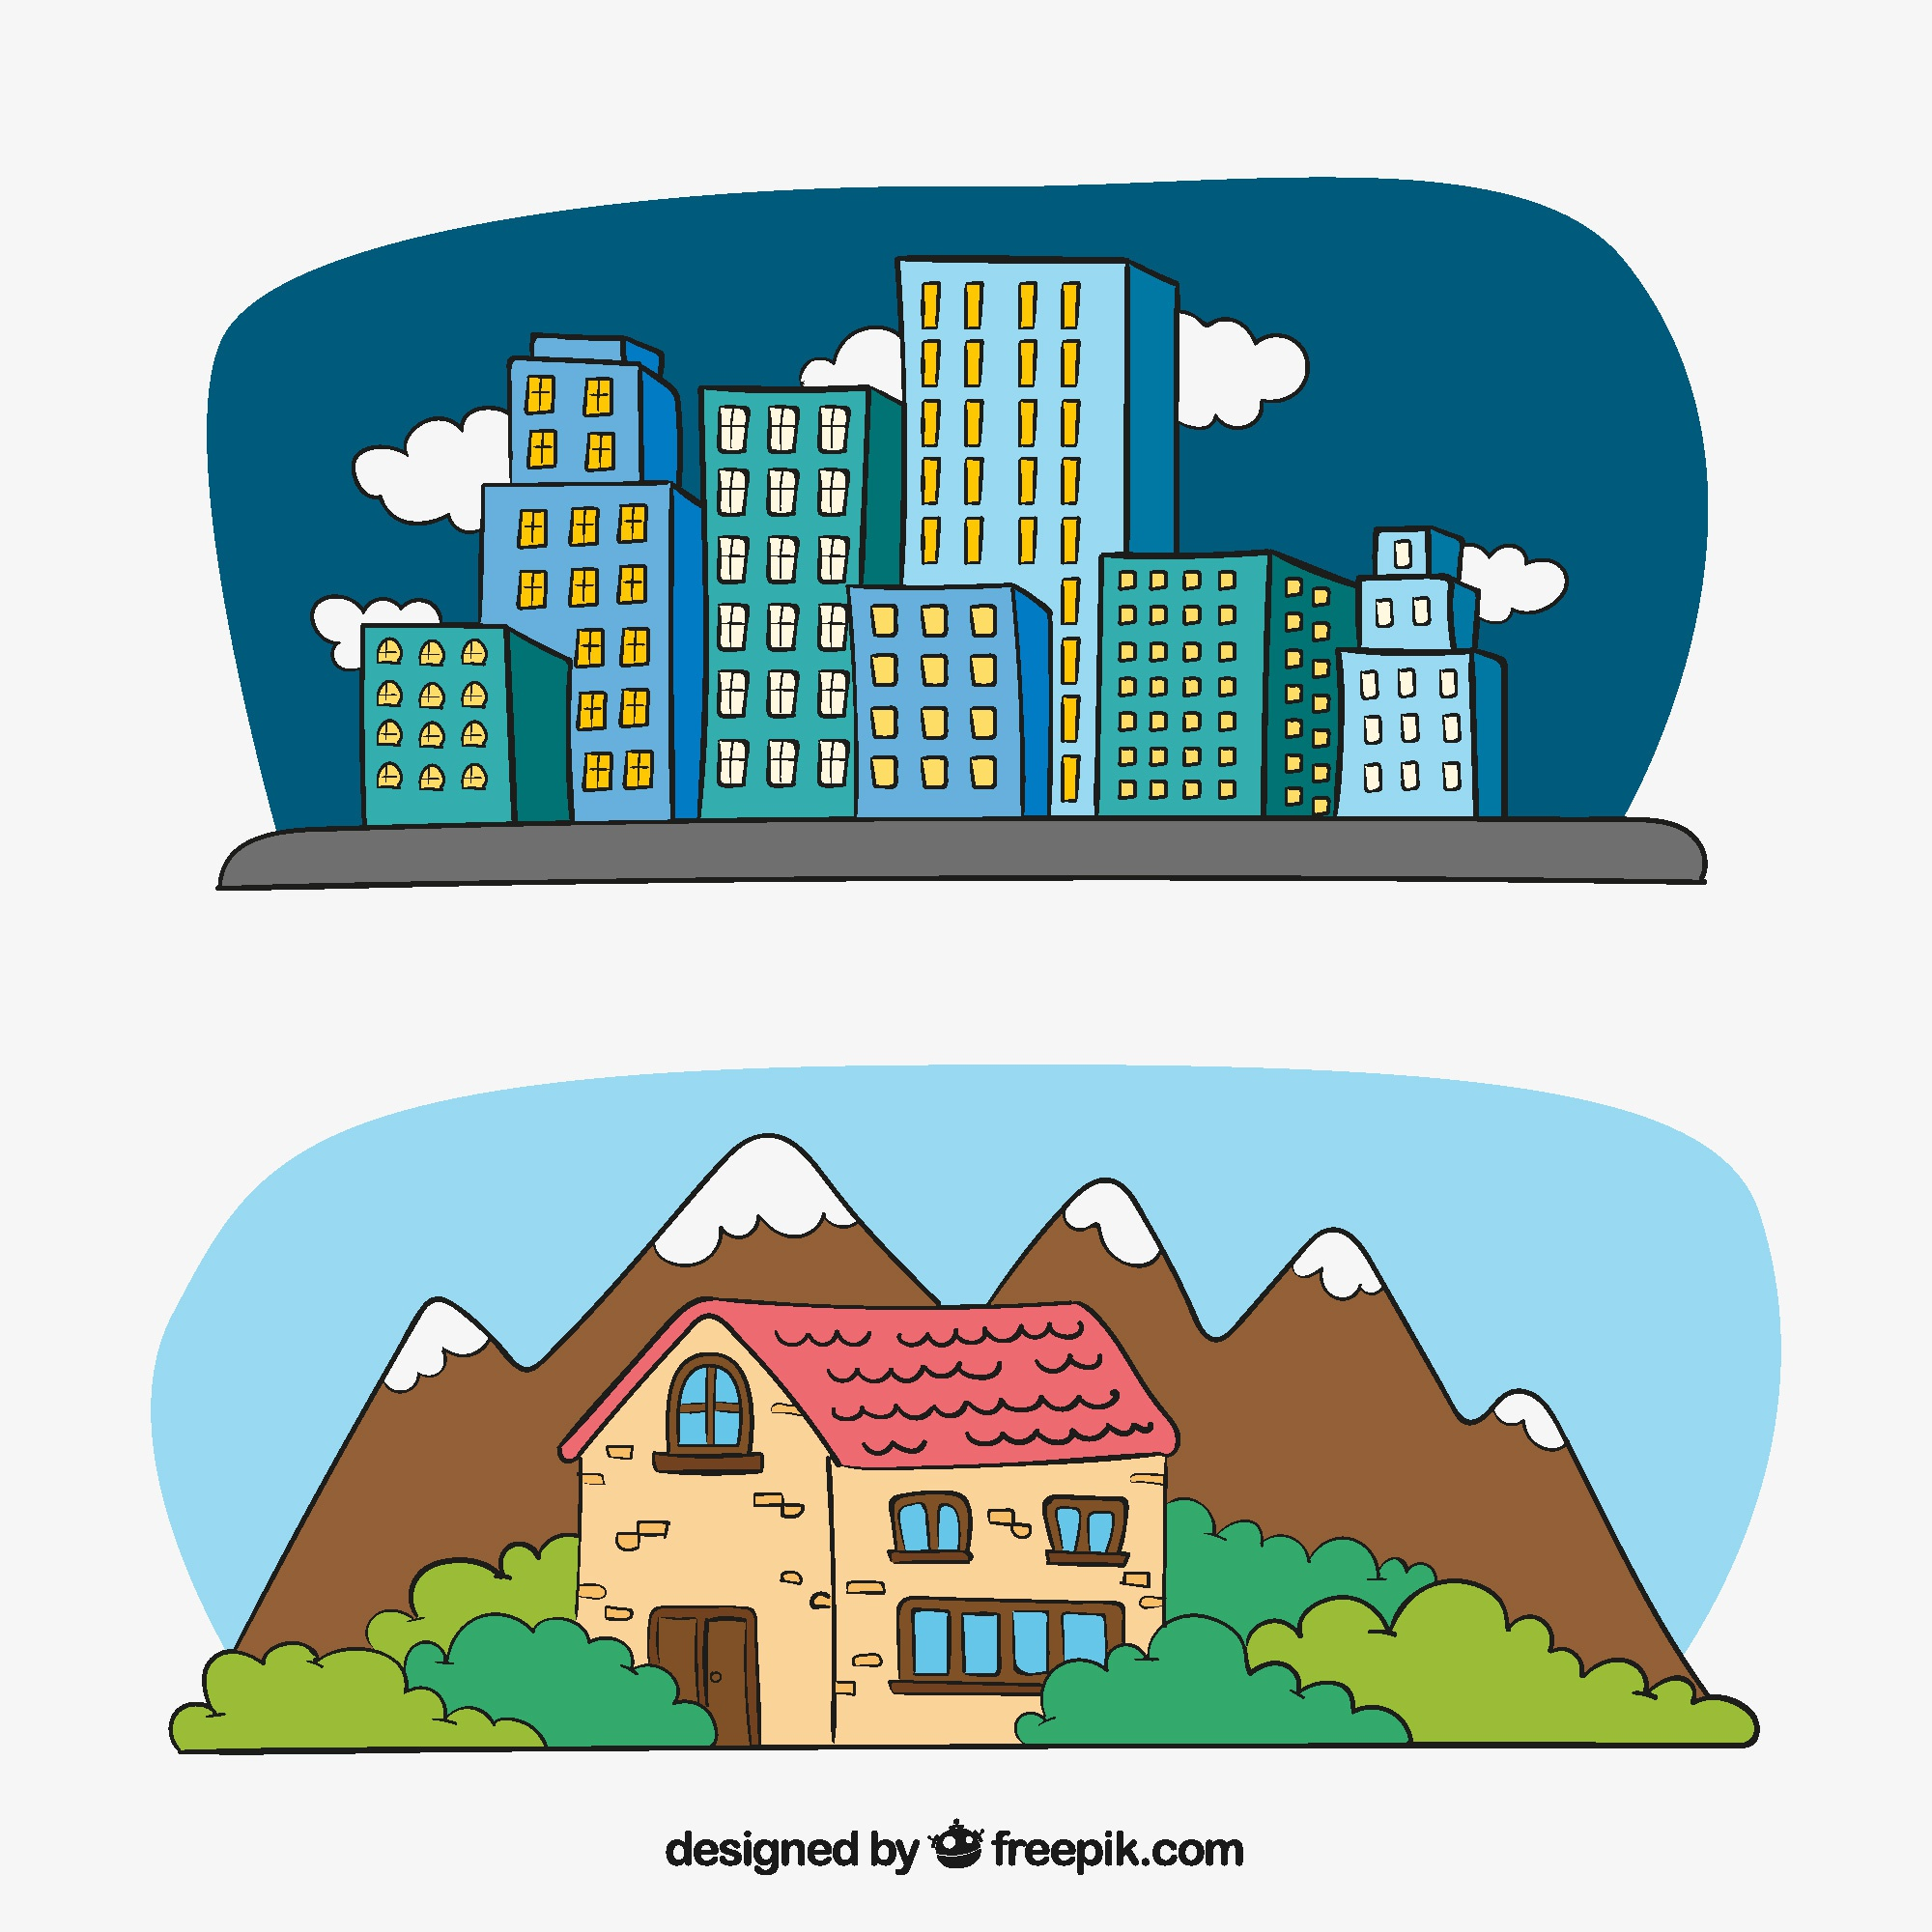 Illustrations of buildings in the city and house in the countryside